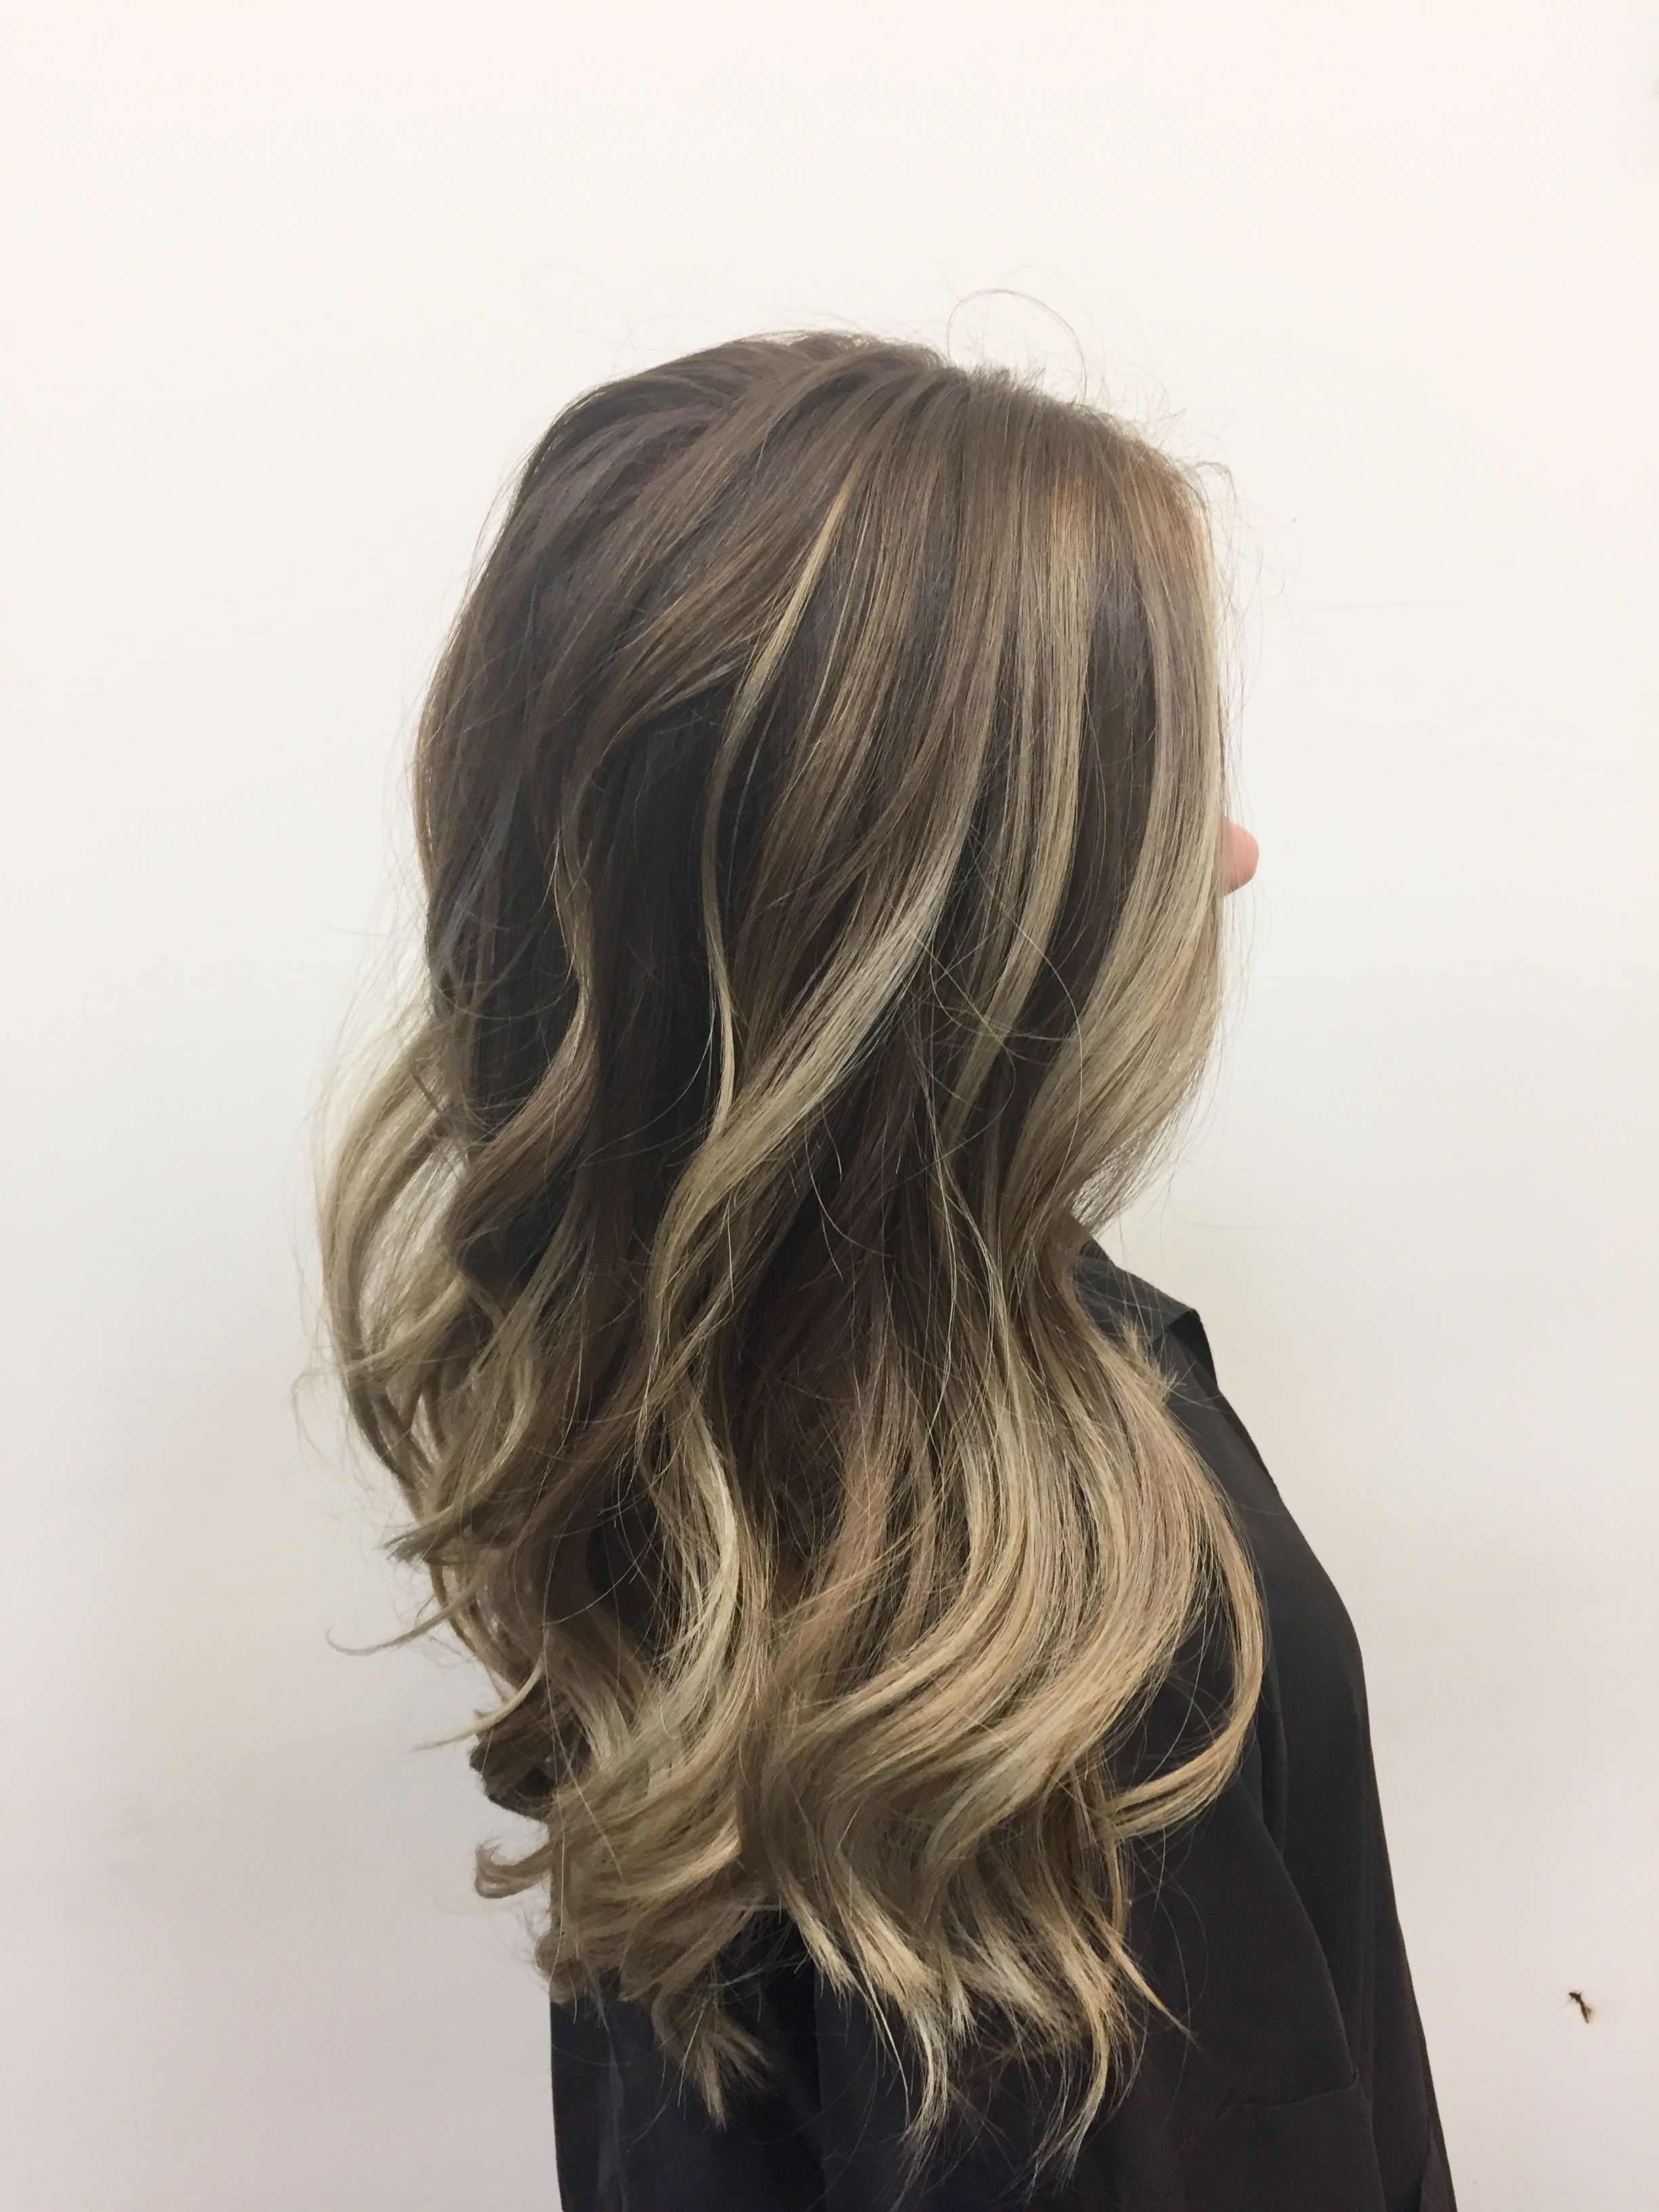 Cool Beige Blonde Balayage On Brown Hair To Make A Ash Color Melt